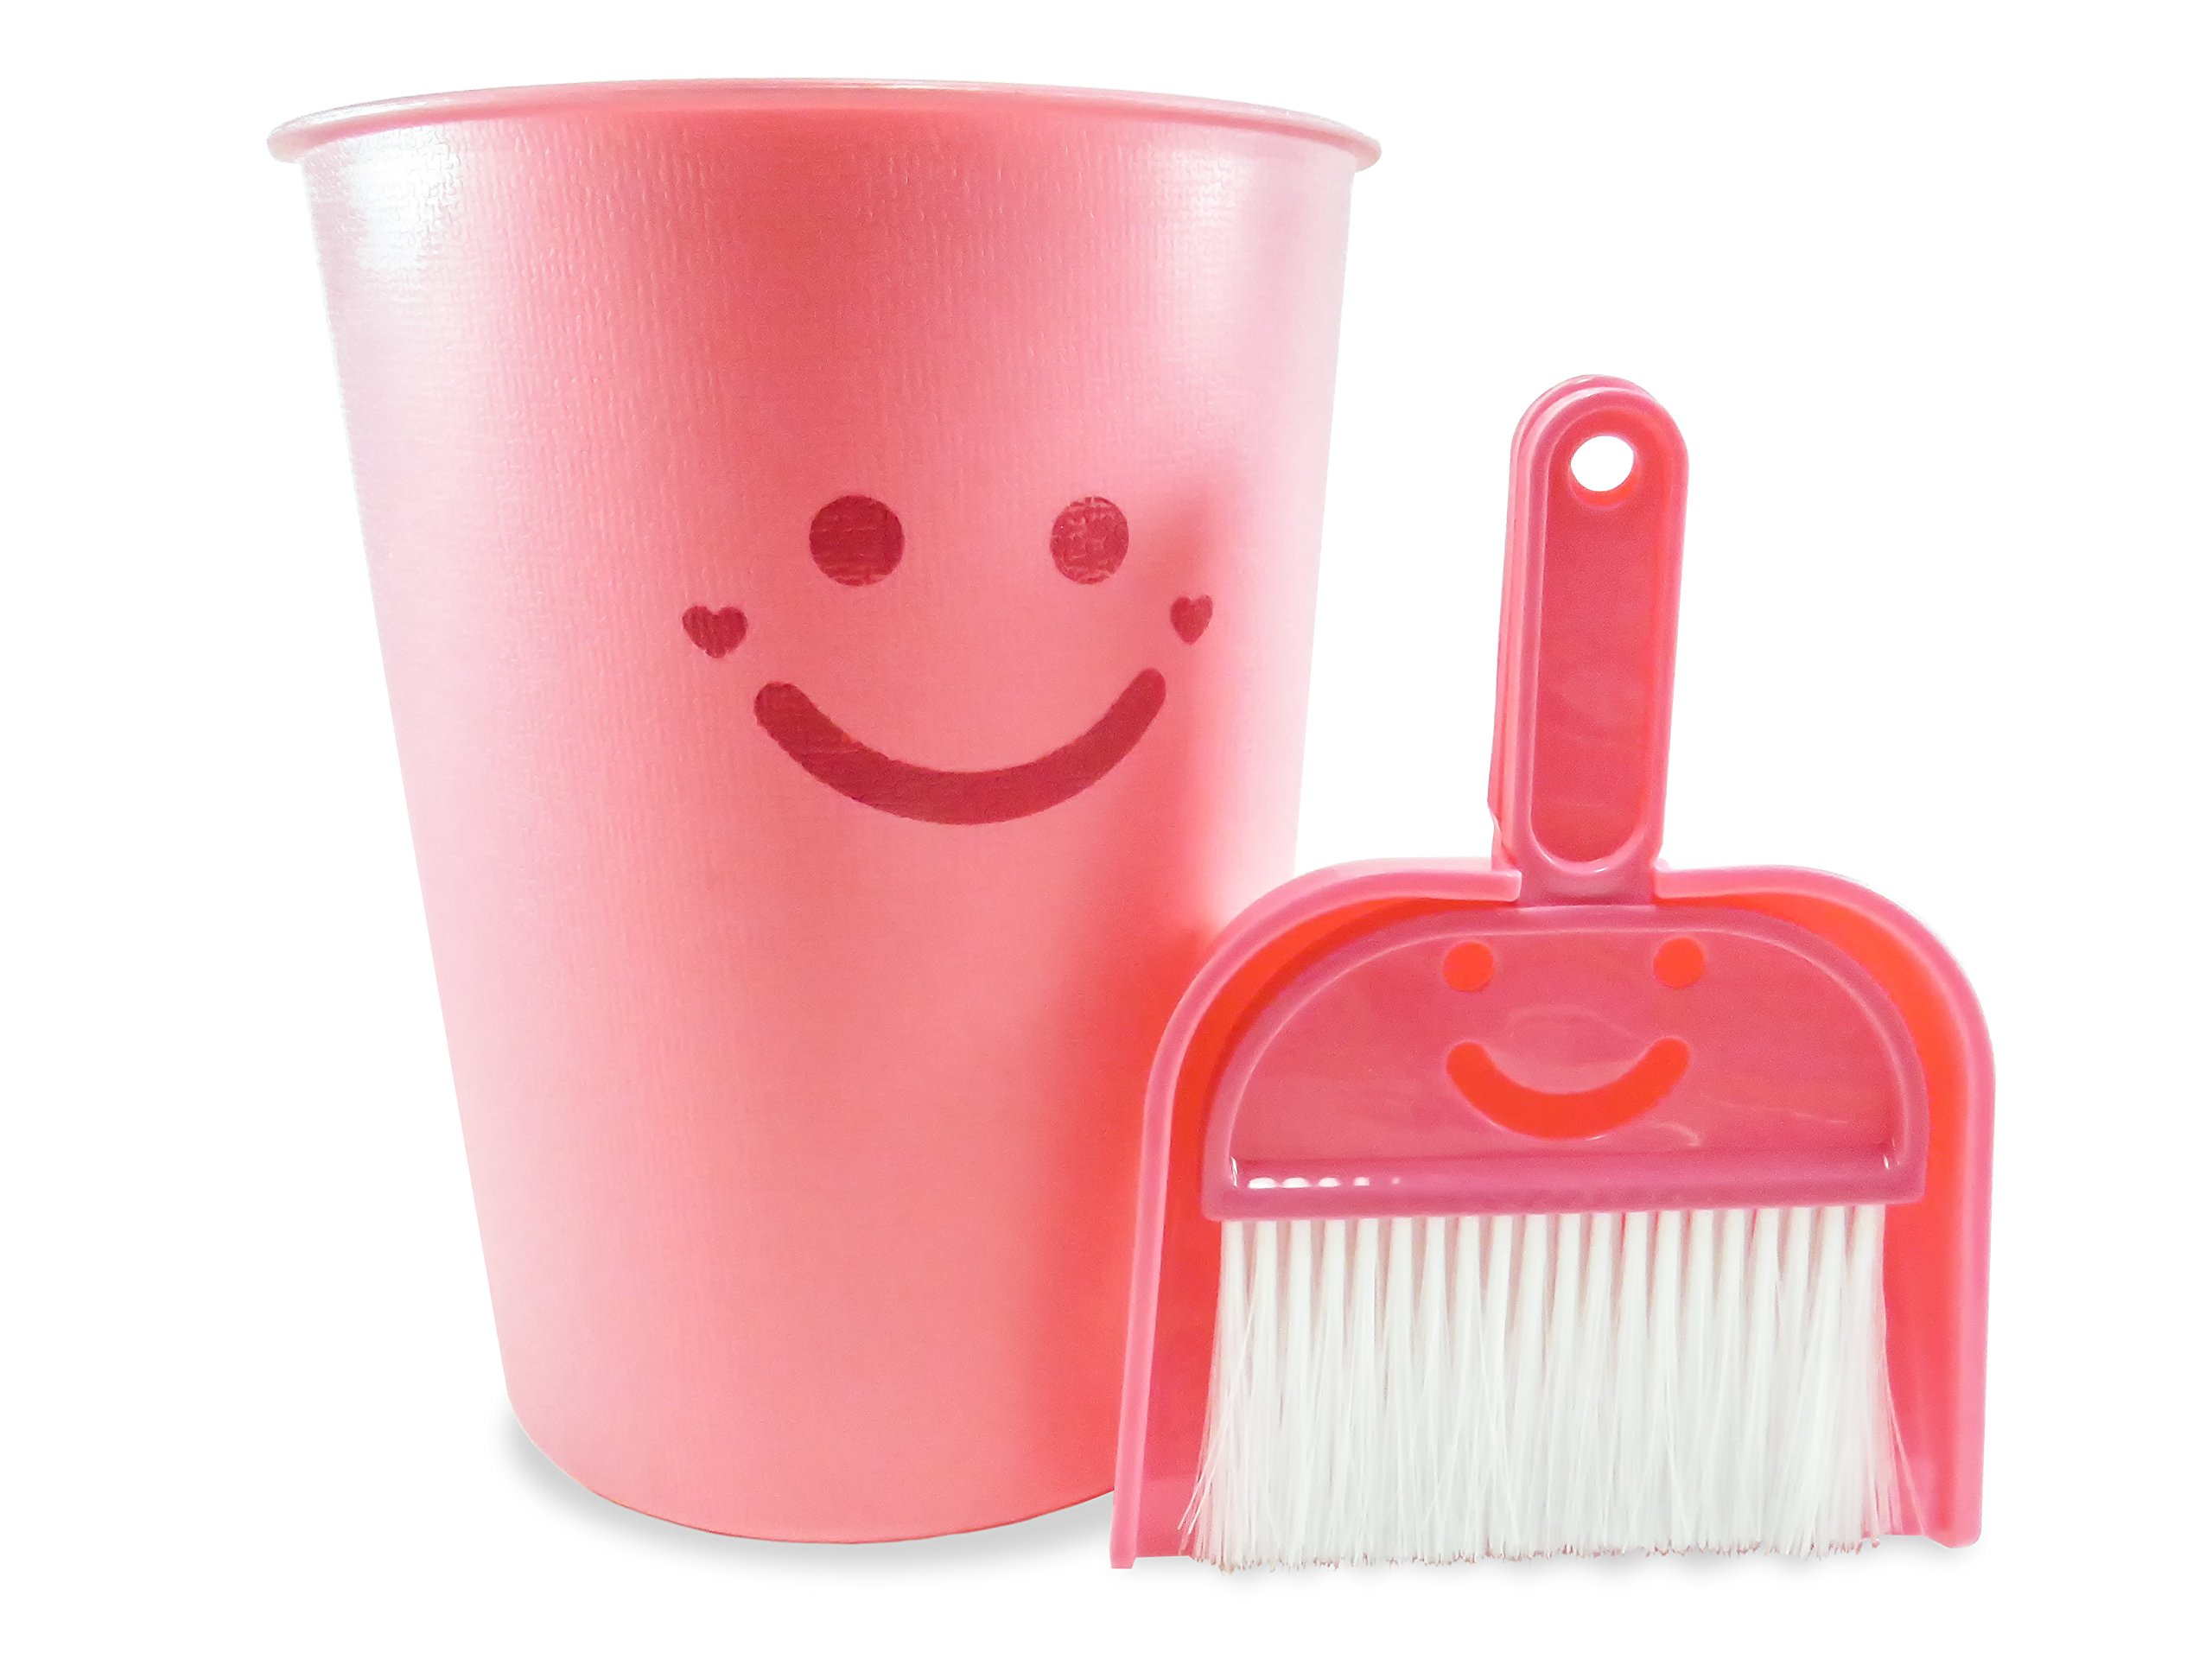 Wastebasket with Dustpan and Brush Set (3 Piece) 1 1/2 Gallon 9 3/4'' Tall Neon Pink - The Happiest Wastebasket and Dustpan on Earth